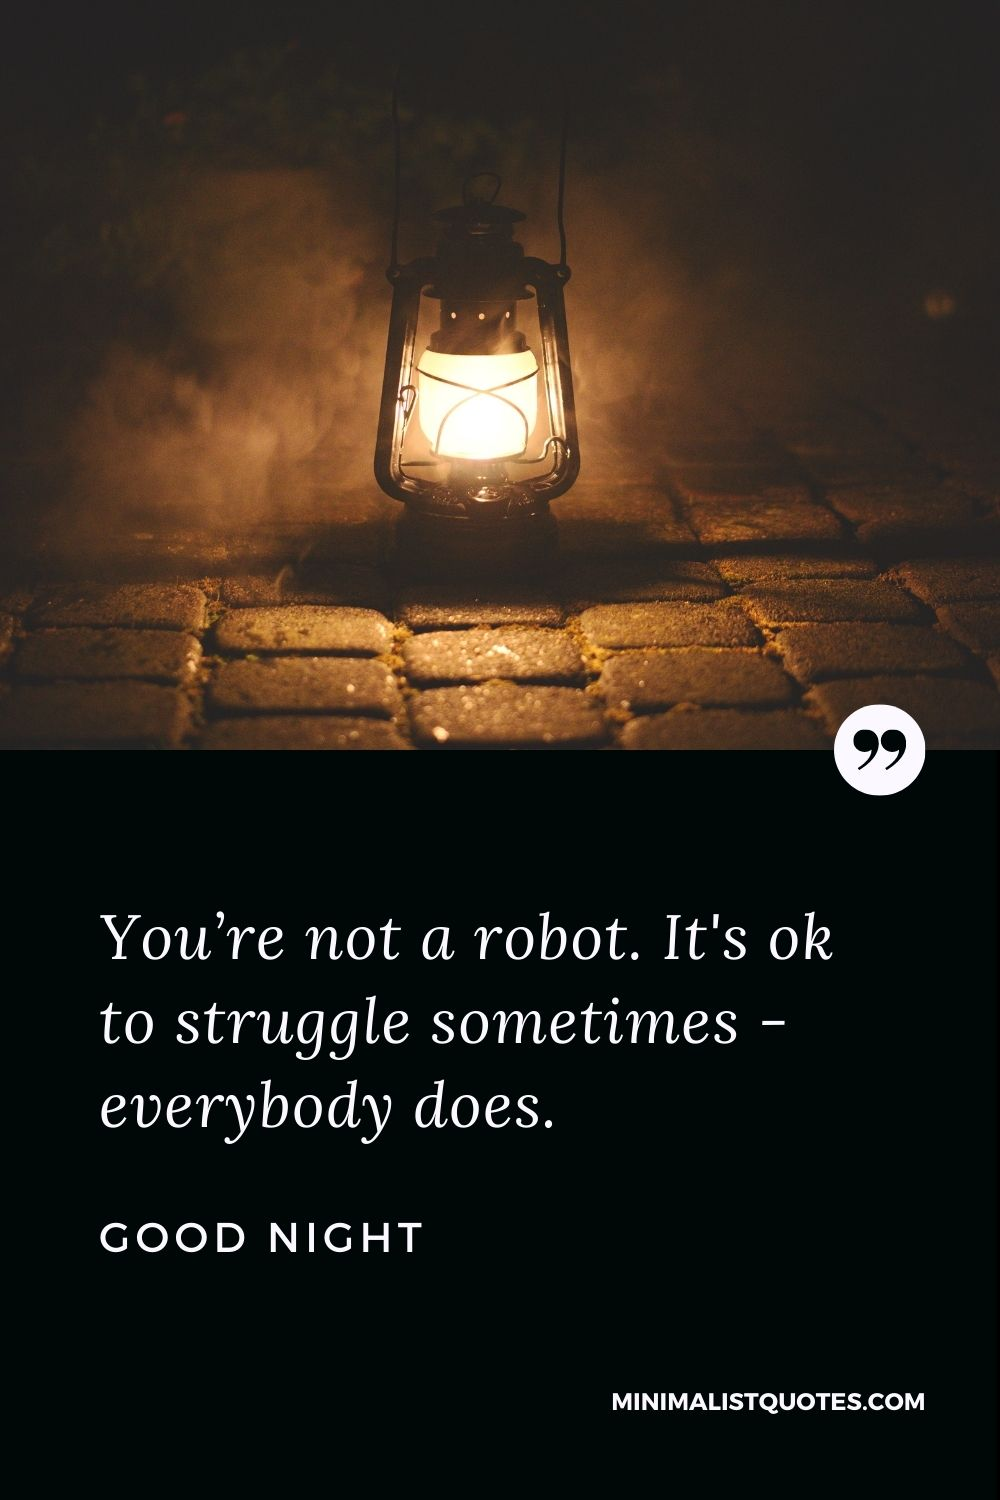 Good Night Wishes - You're not a robot. It's ok to struggle sometimes - everybody does.